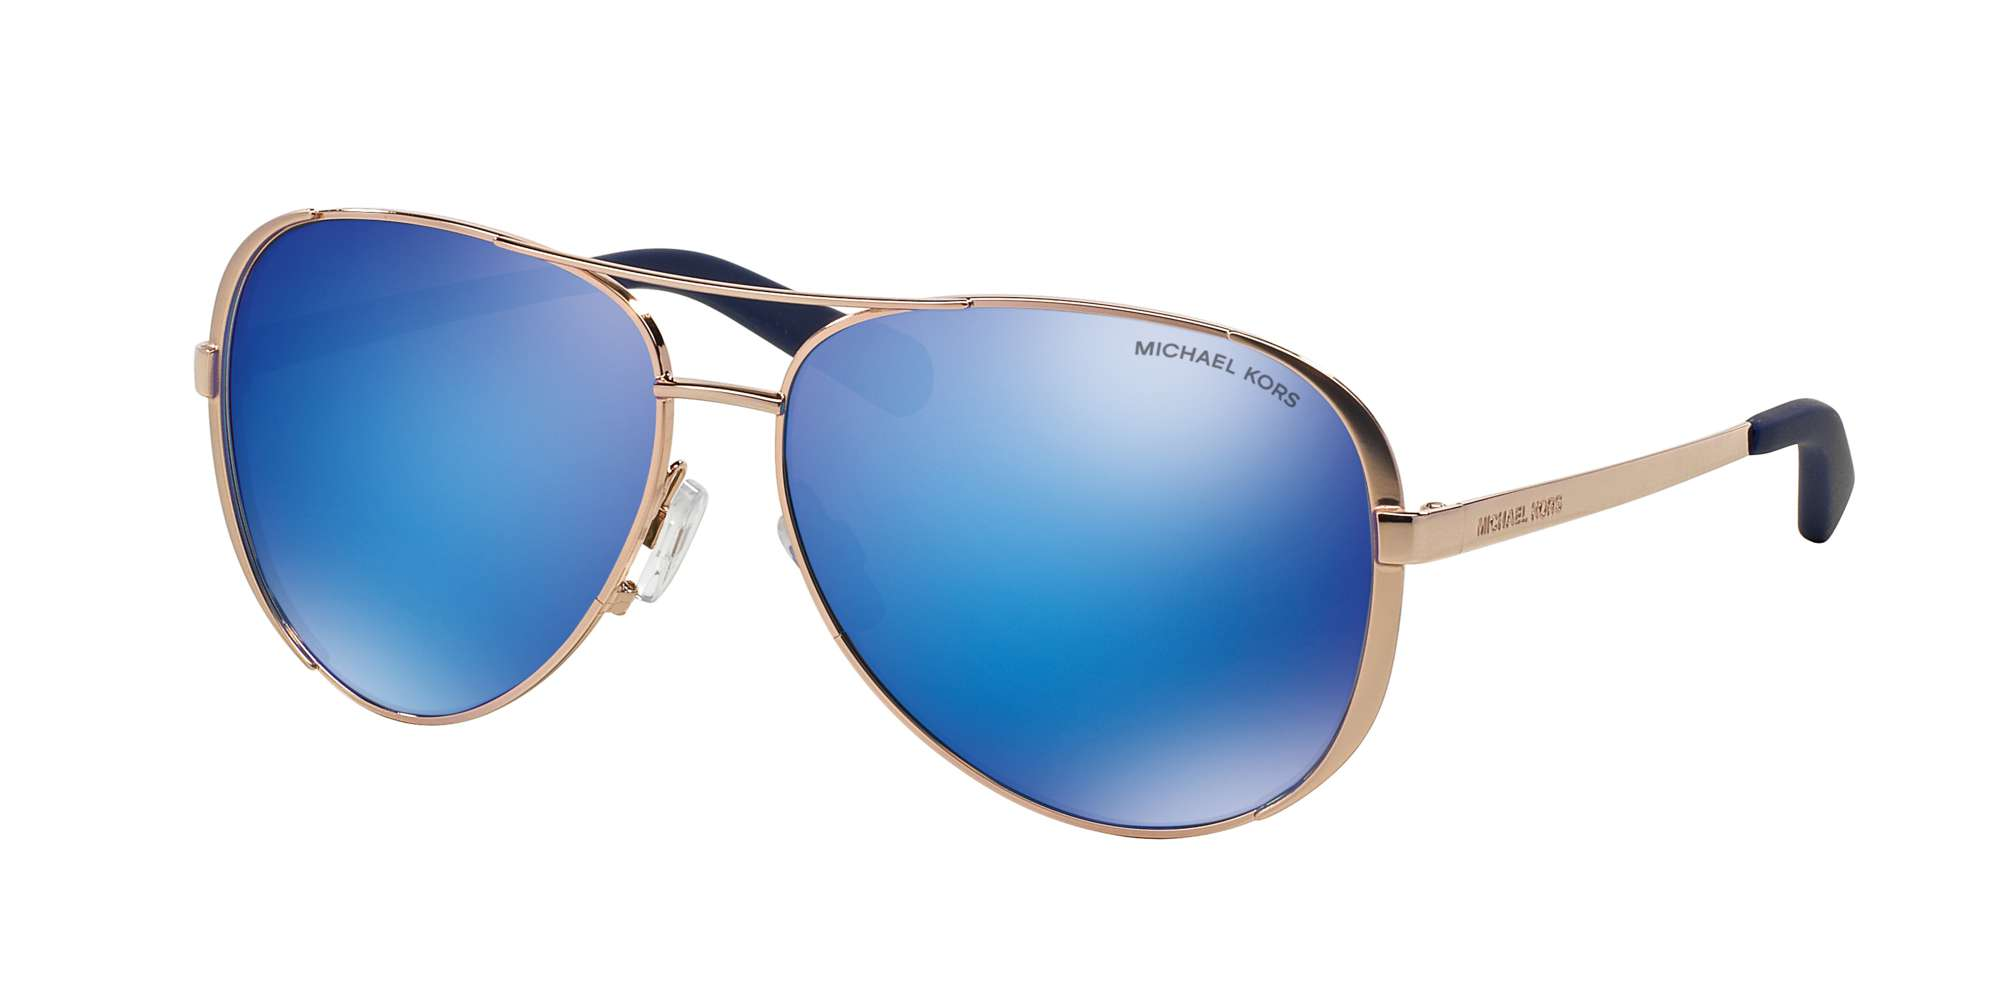 ROSE GOLD-TONE / BLUE MIRROR lenses